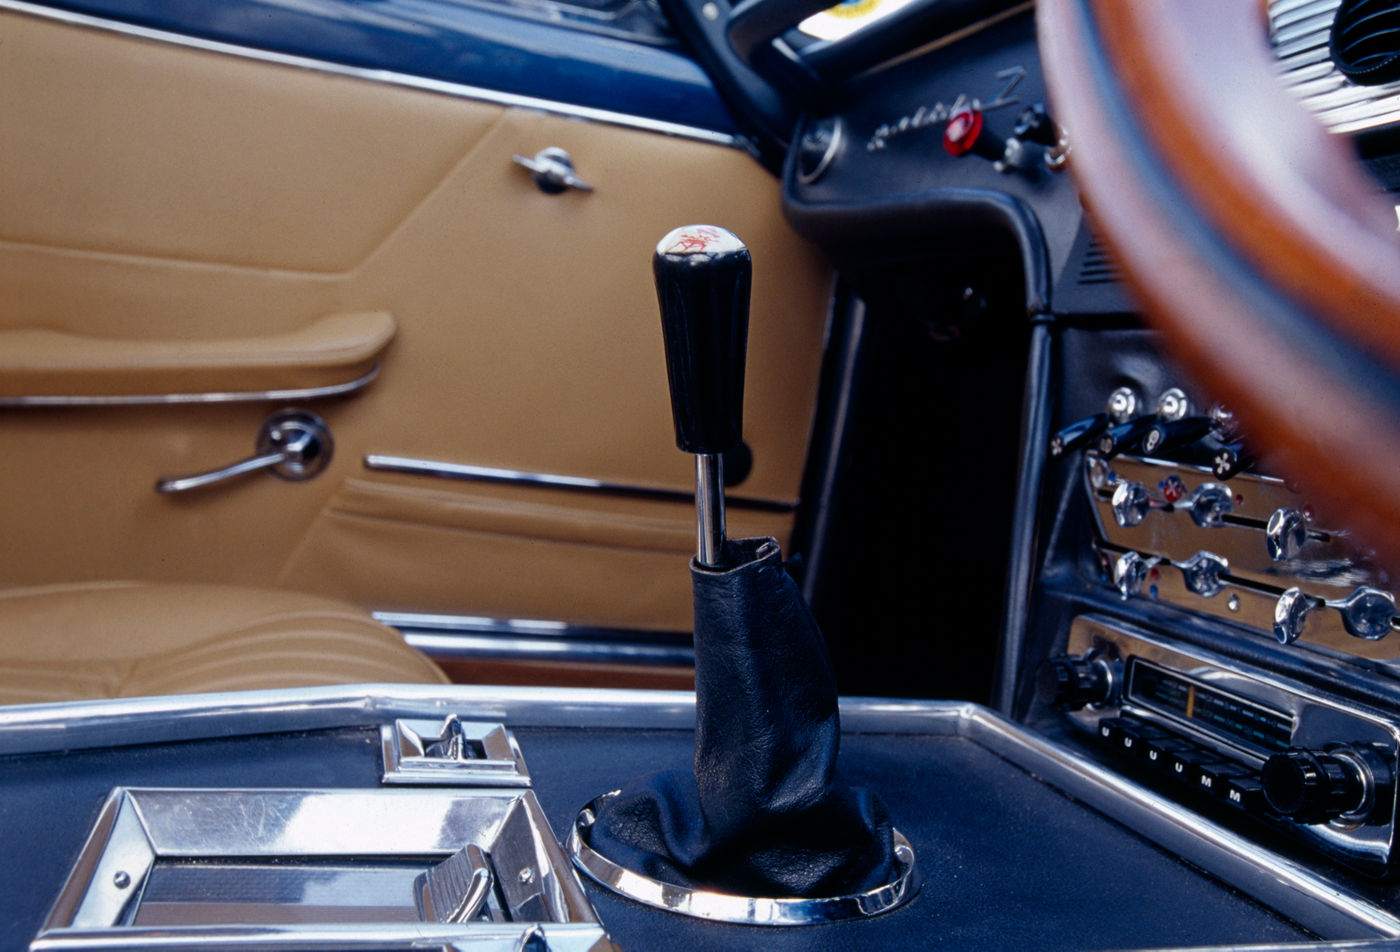 1964 Maserati Sebring - Second Series - interior view of the classic car model